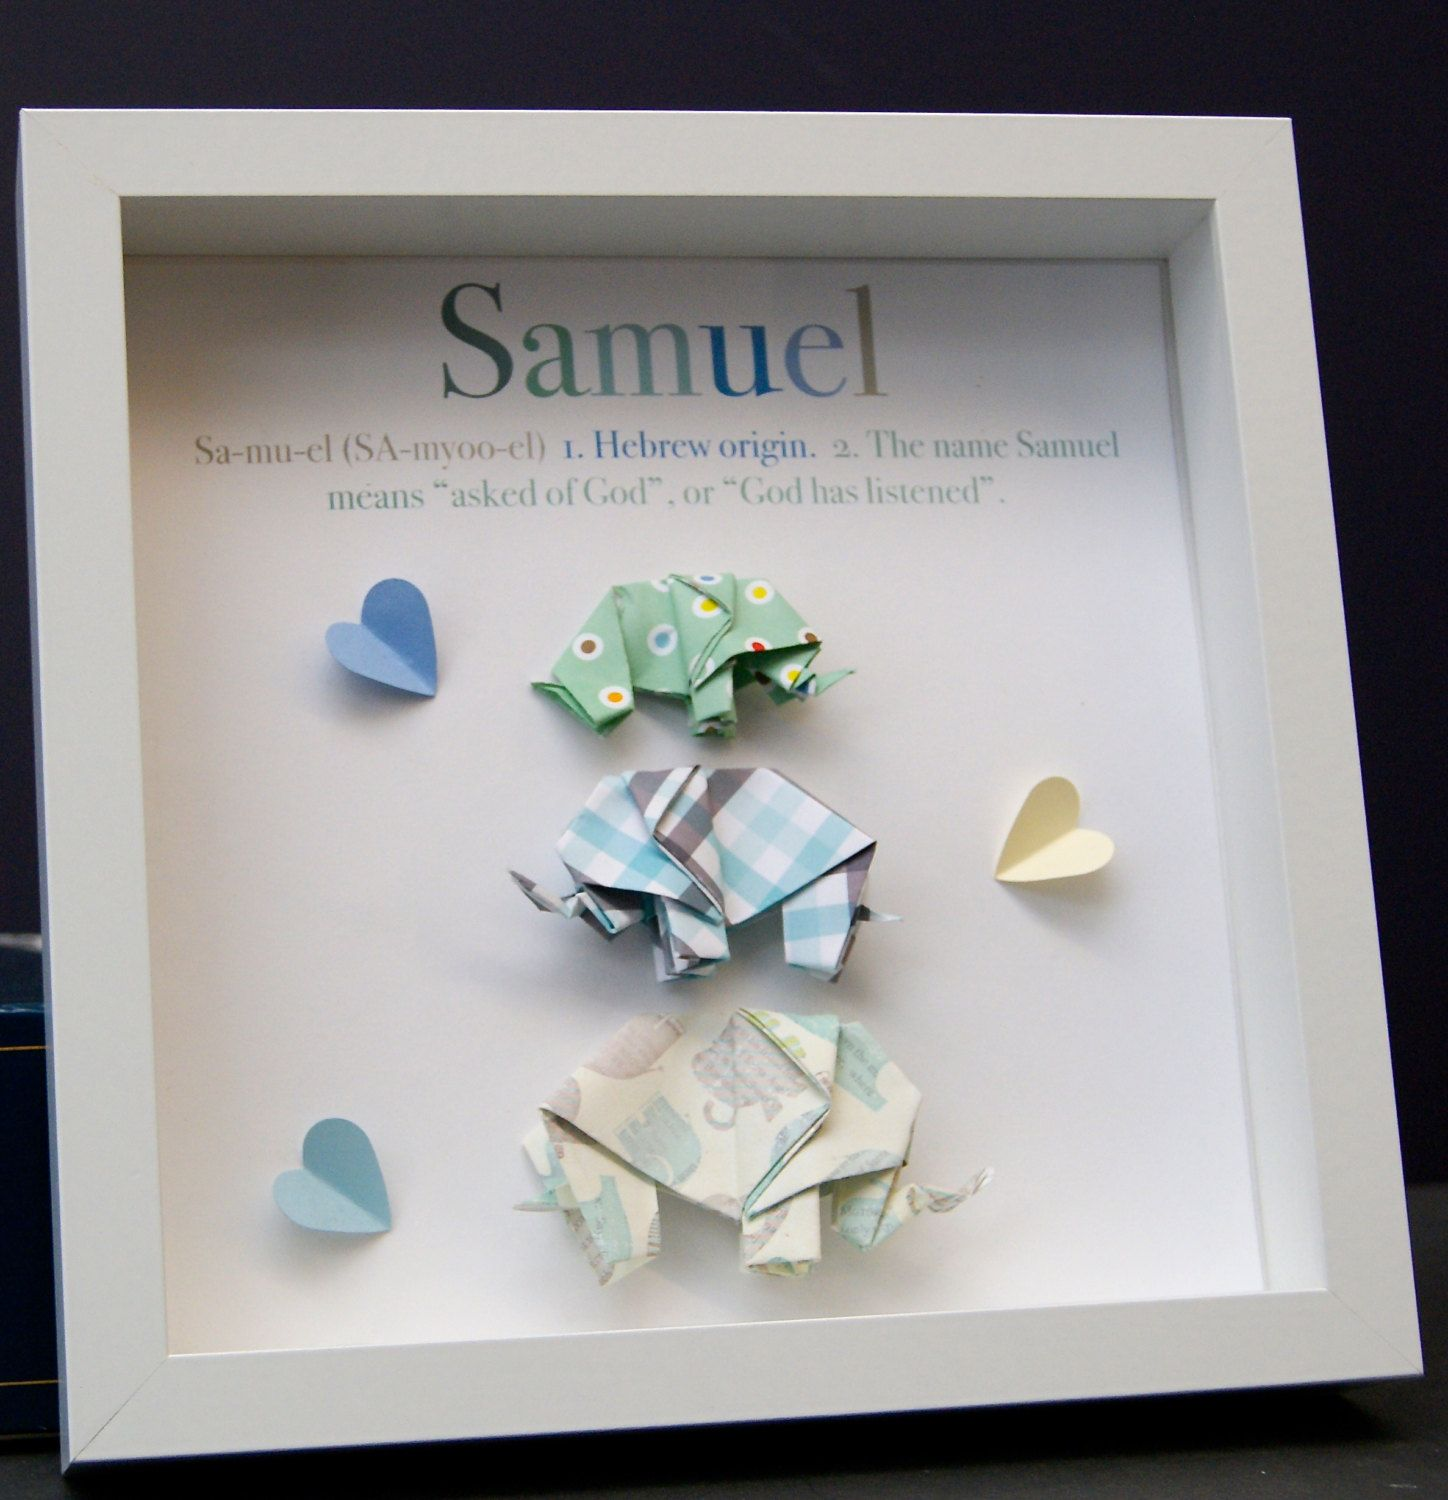 Personalized name paper origami elephants shadowbox custom newborn personalized name paper origami elephants shadowbox custom newborn baby shower gift by paintandpapercraft on etsy negle Image collections